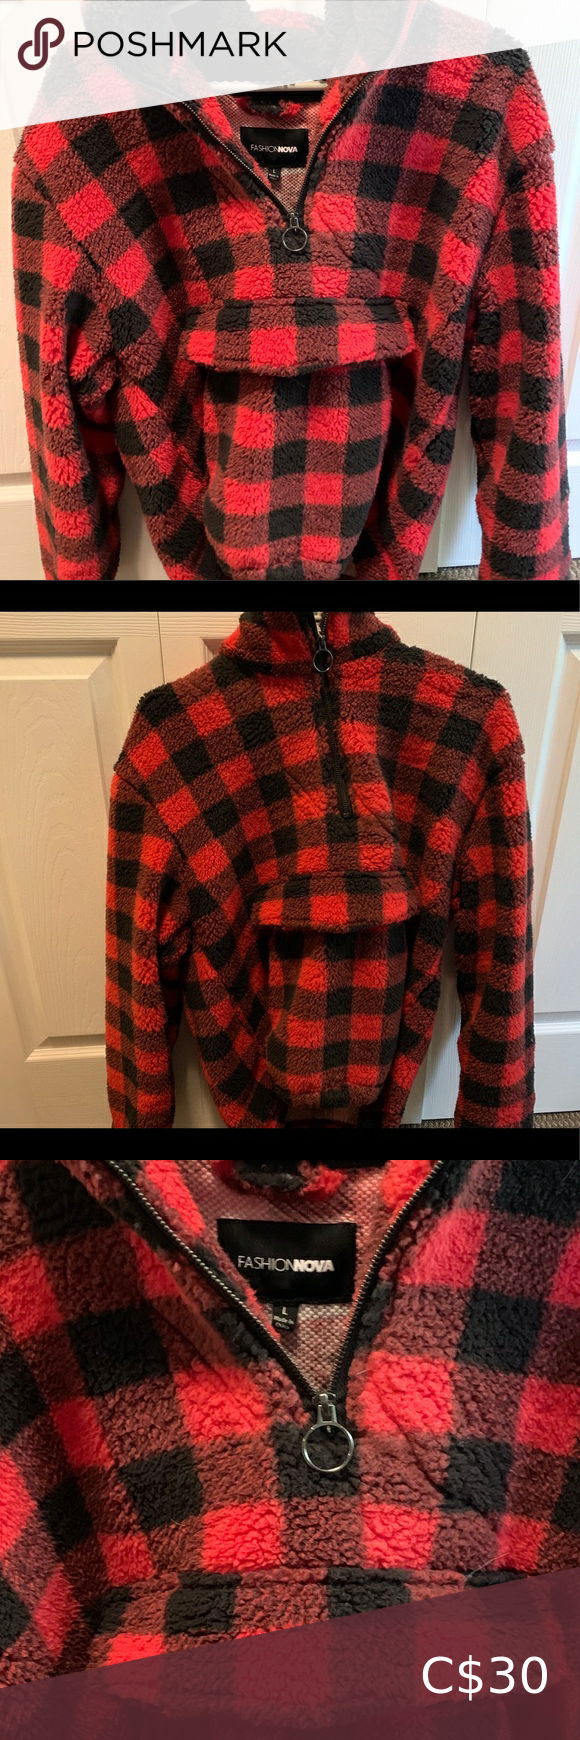 Fashion nova flannel style 1/4 sherpa